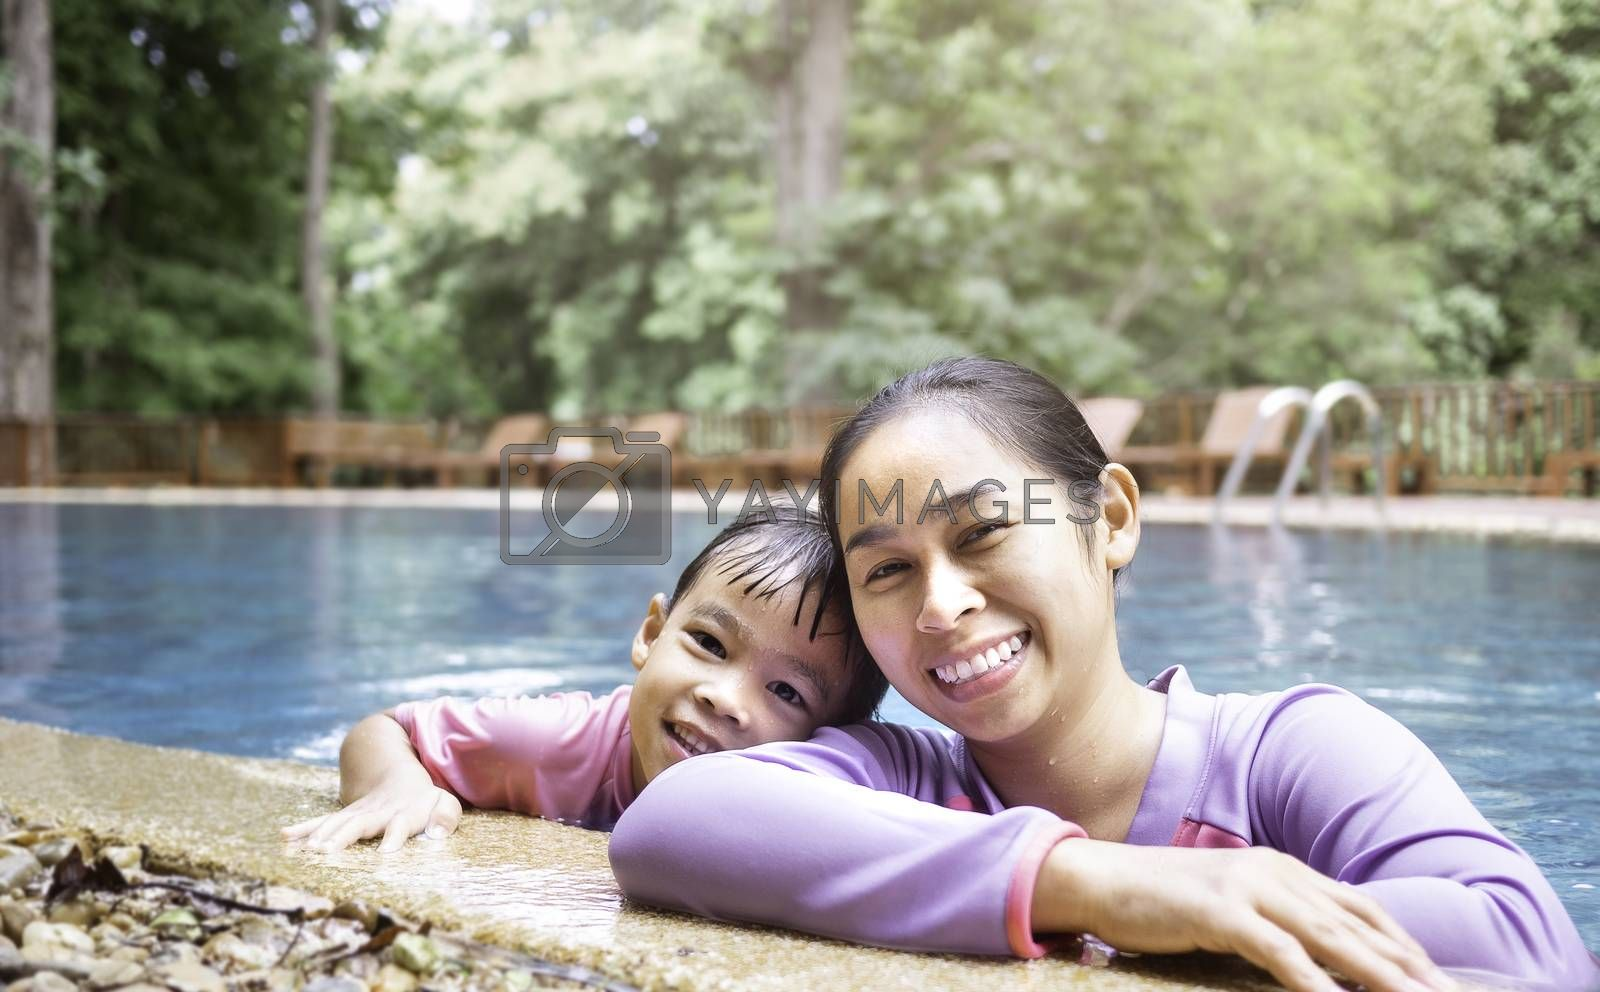 Happy young mother and her daughter smiling in swimming pool in a hot summer day. Family lifestyle in vacation.